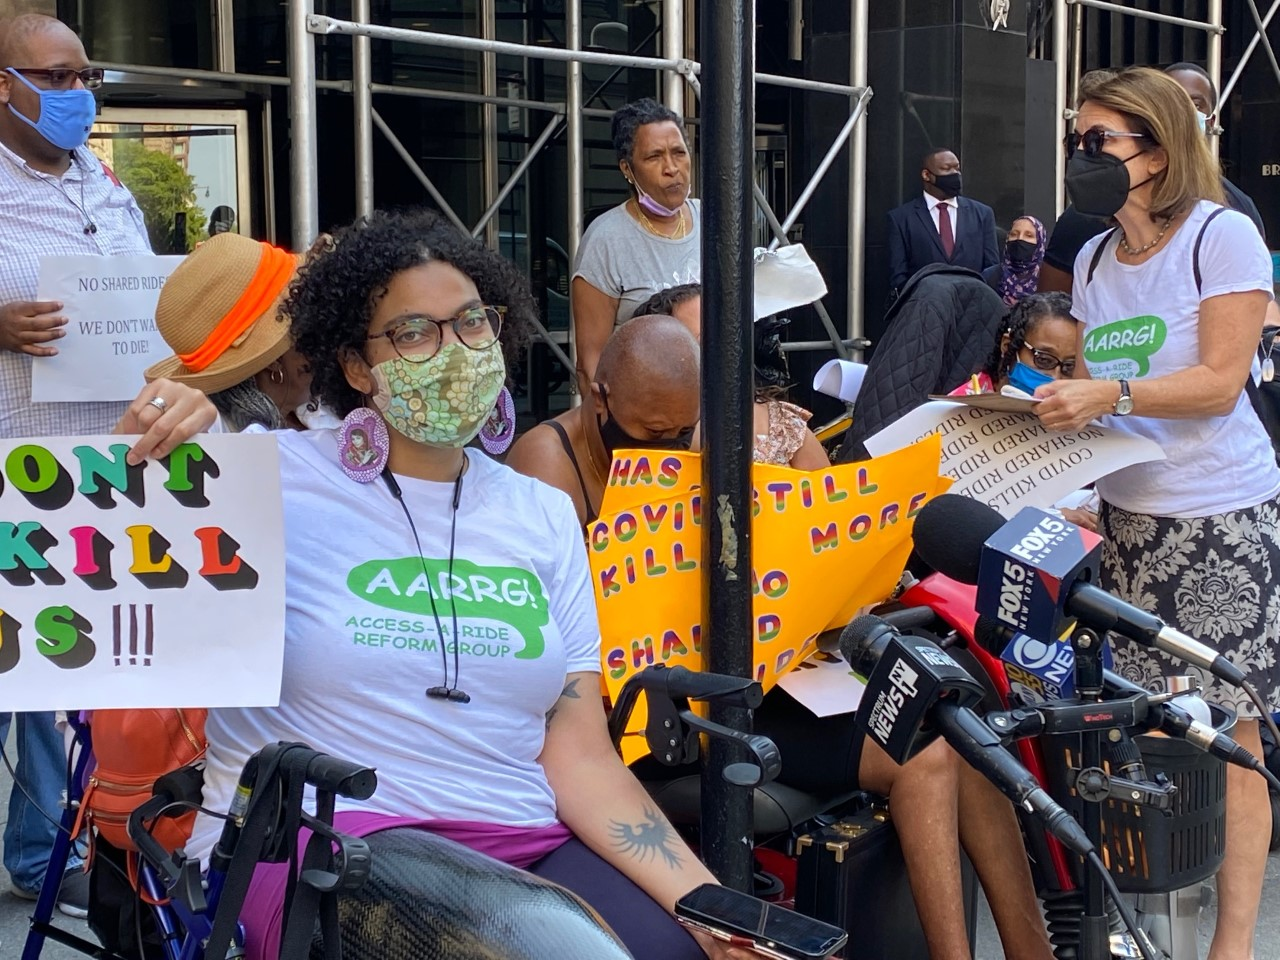 """Eman Rimawi, a Black, Native American and Palestinian woman using a wheelchair, wears a tshirt with the Access-a-Ride Reform Group logo and holds up a sign that reads """"Don't Kill Us."""" She is wearing a mask as other masked protestors gather nearby."""